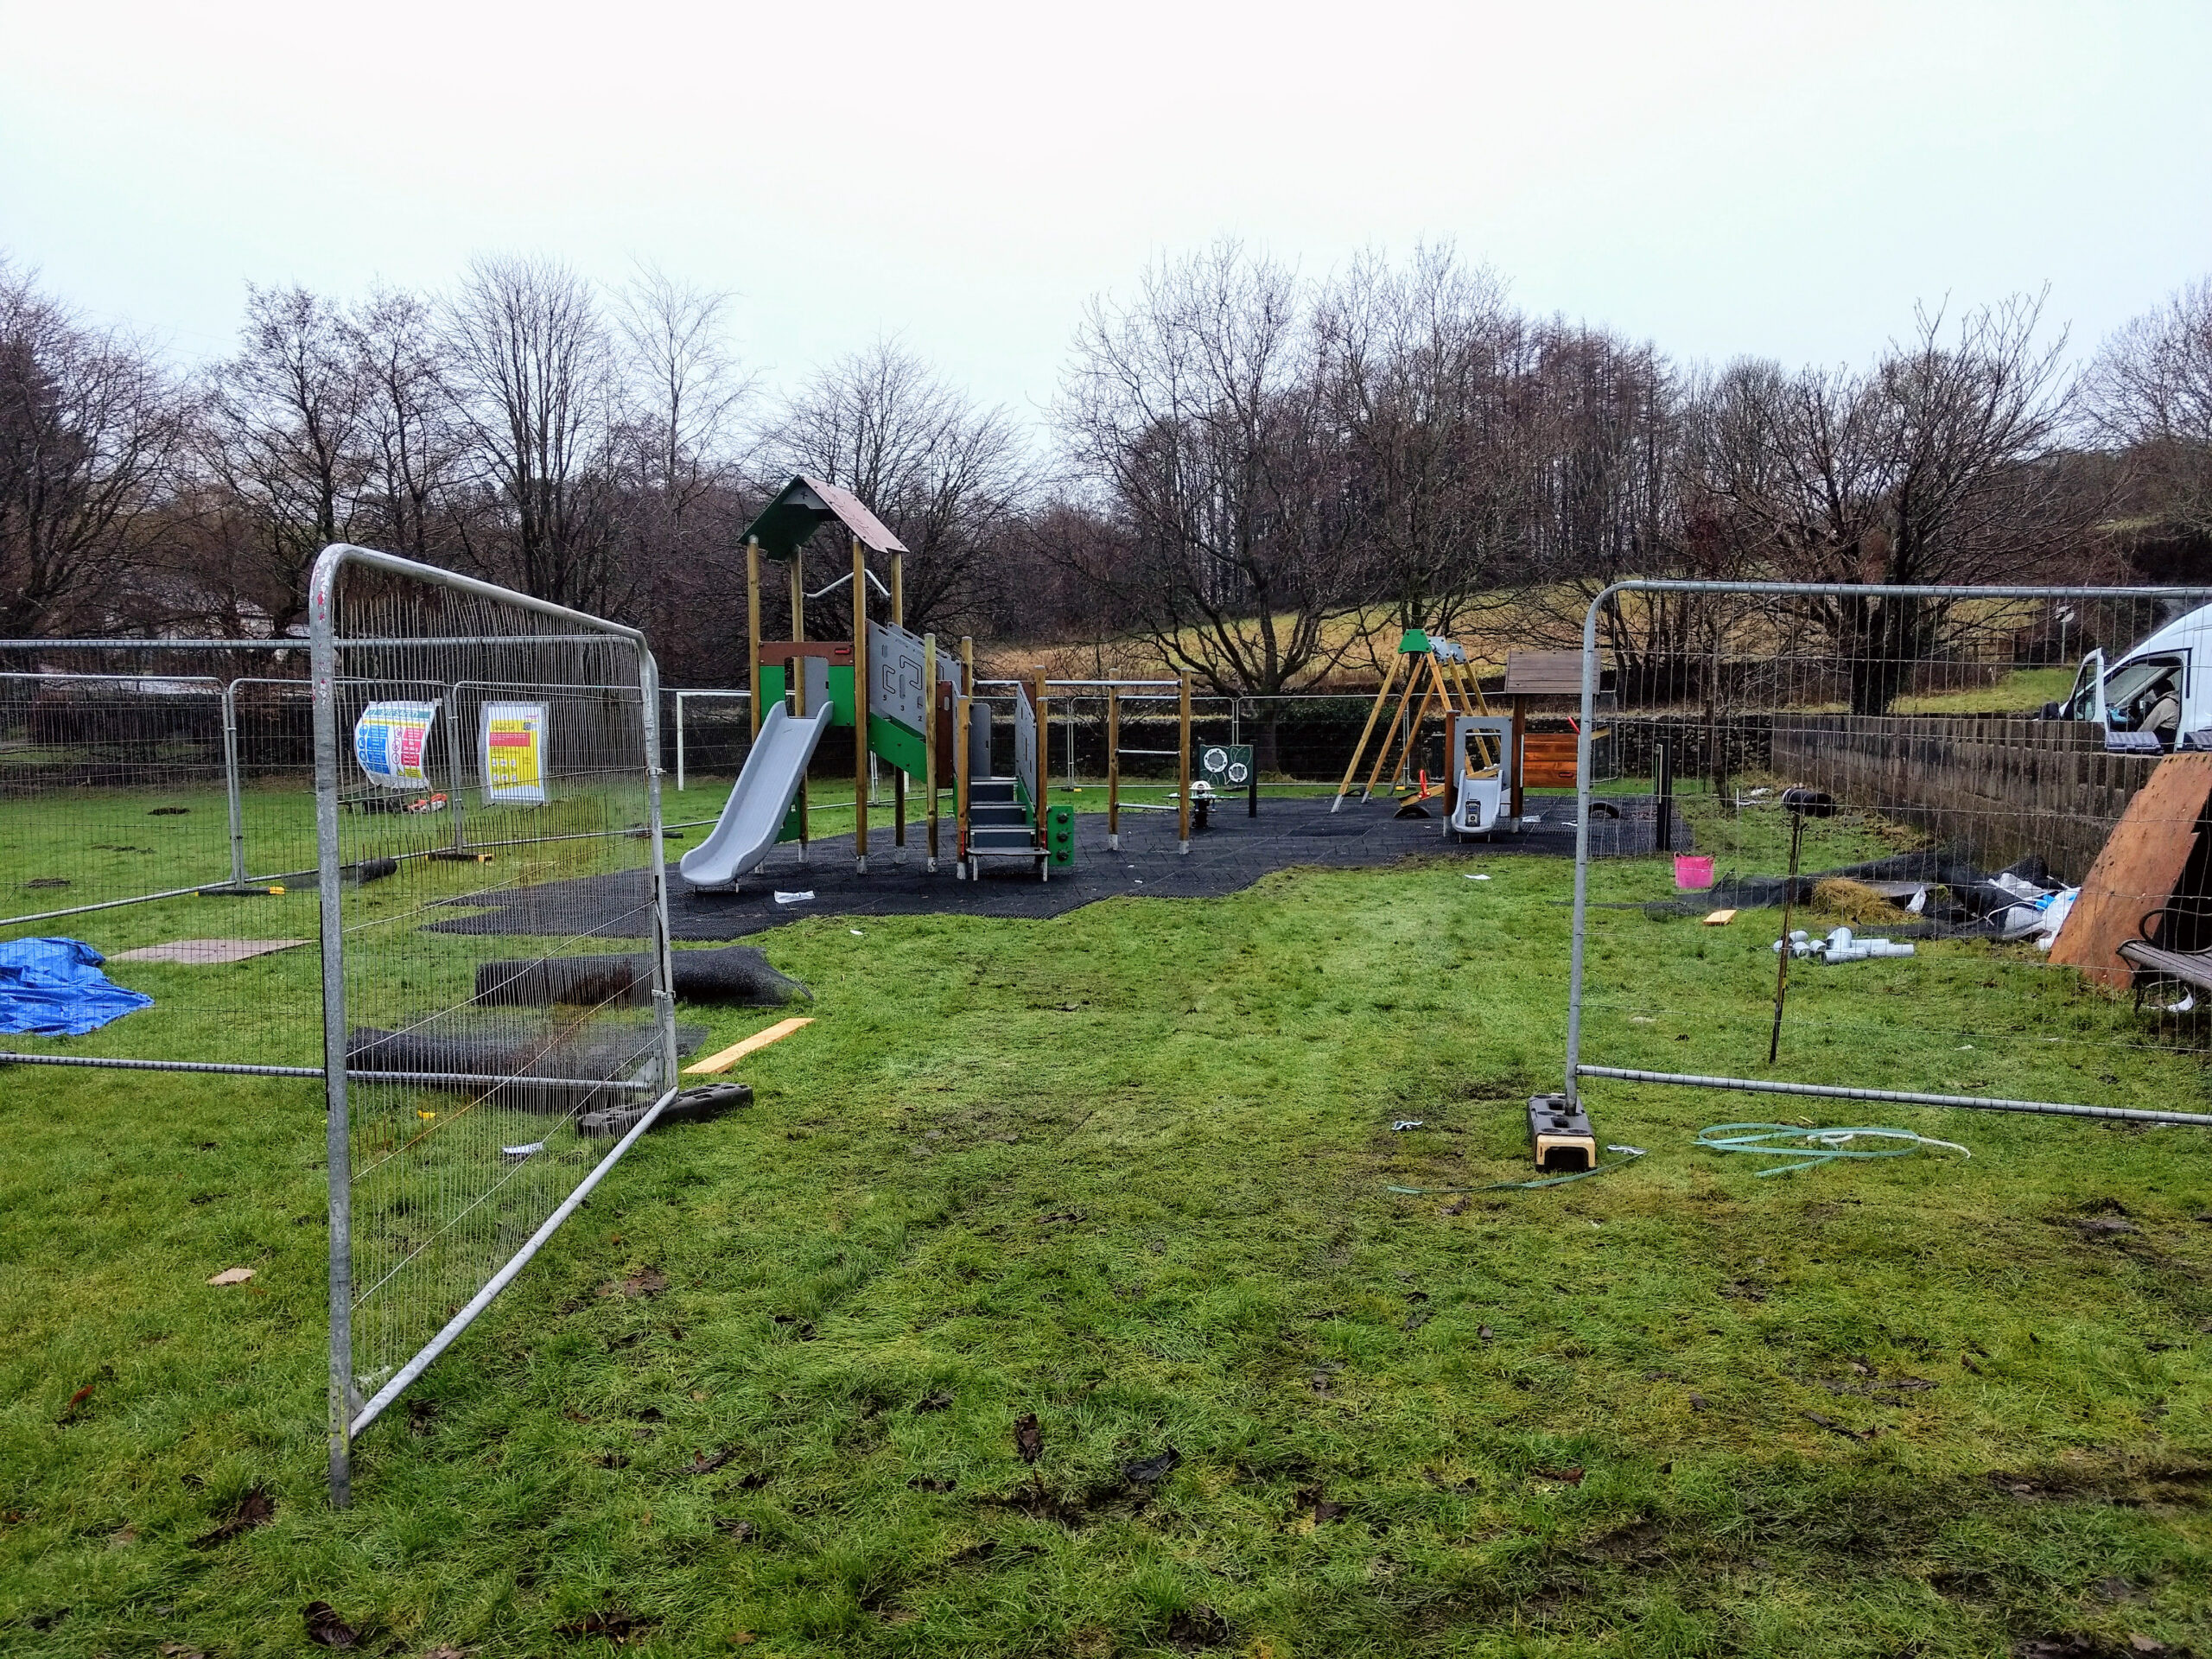 Construction underway at the Play Area with some equipment in-situ